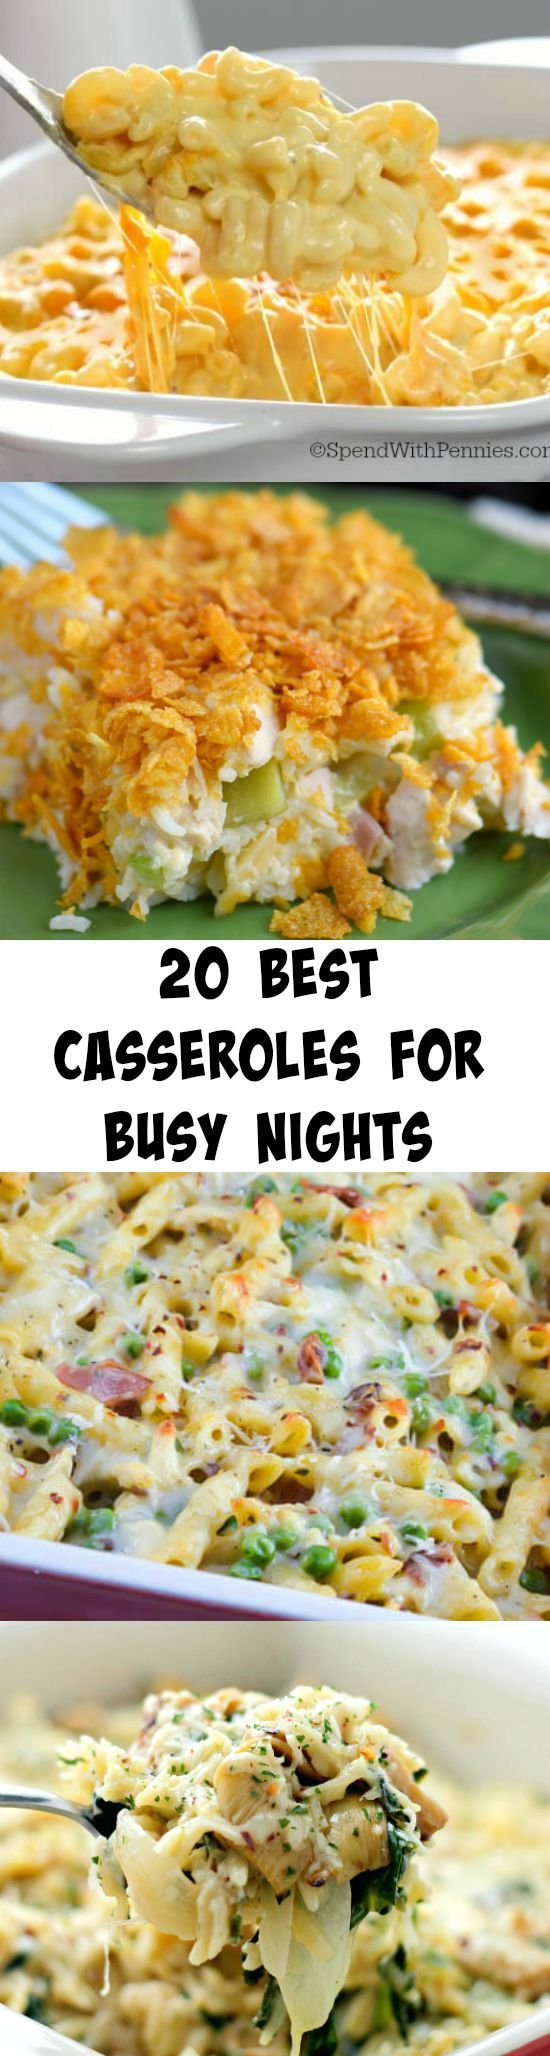 online shopping for clothing in canada Everyone needs these recipes    20 of the BEST Casseroles for Busy Nights